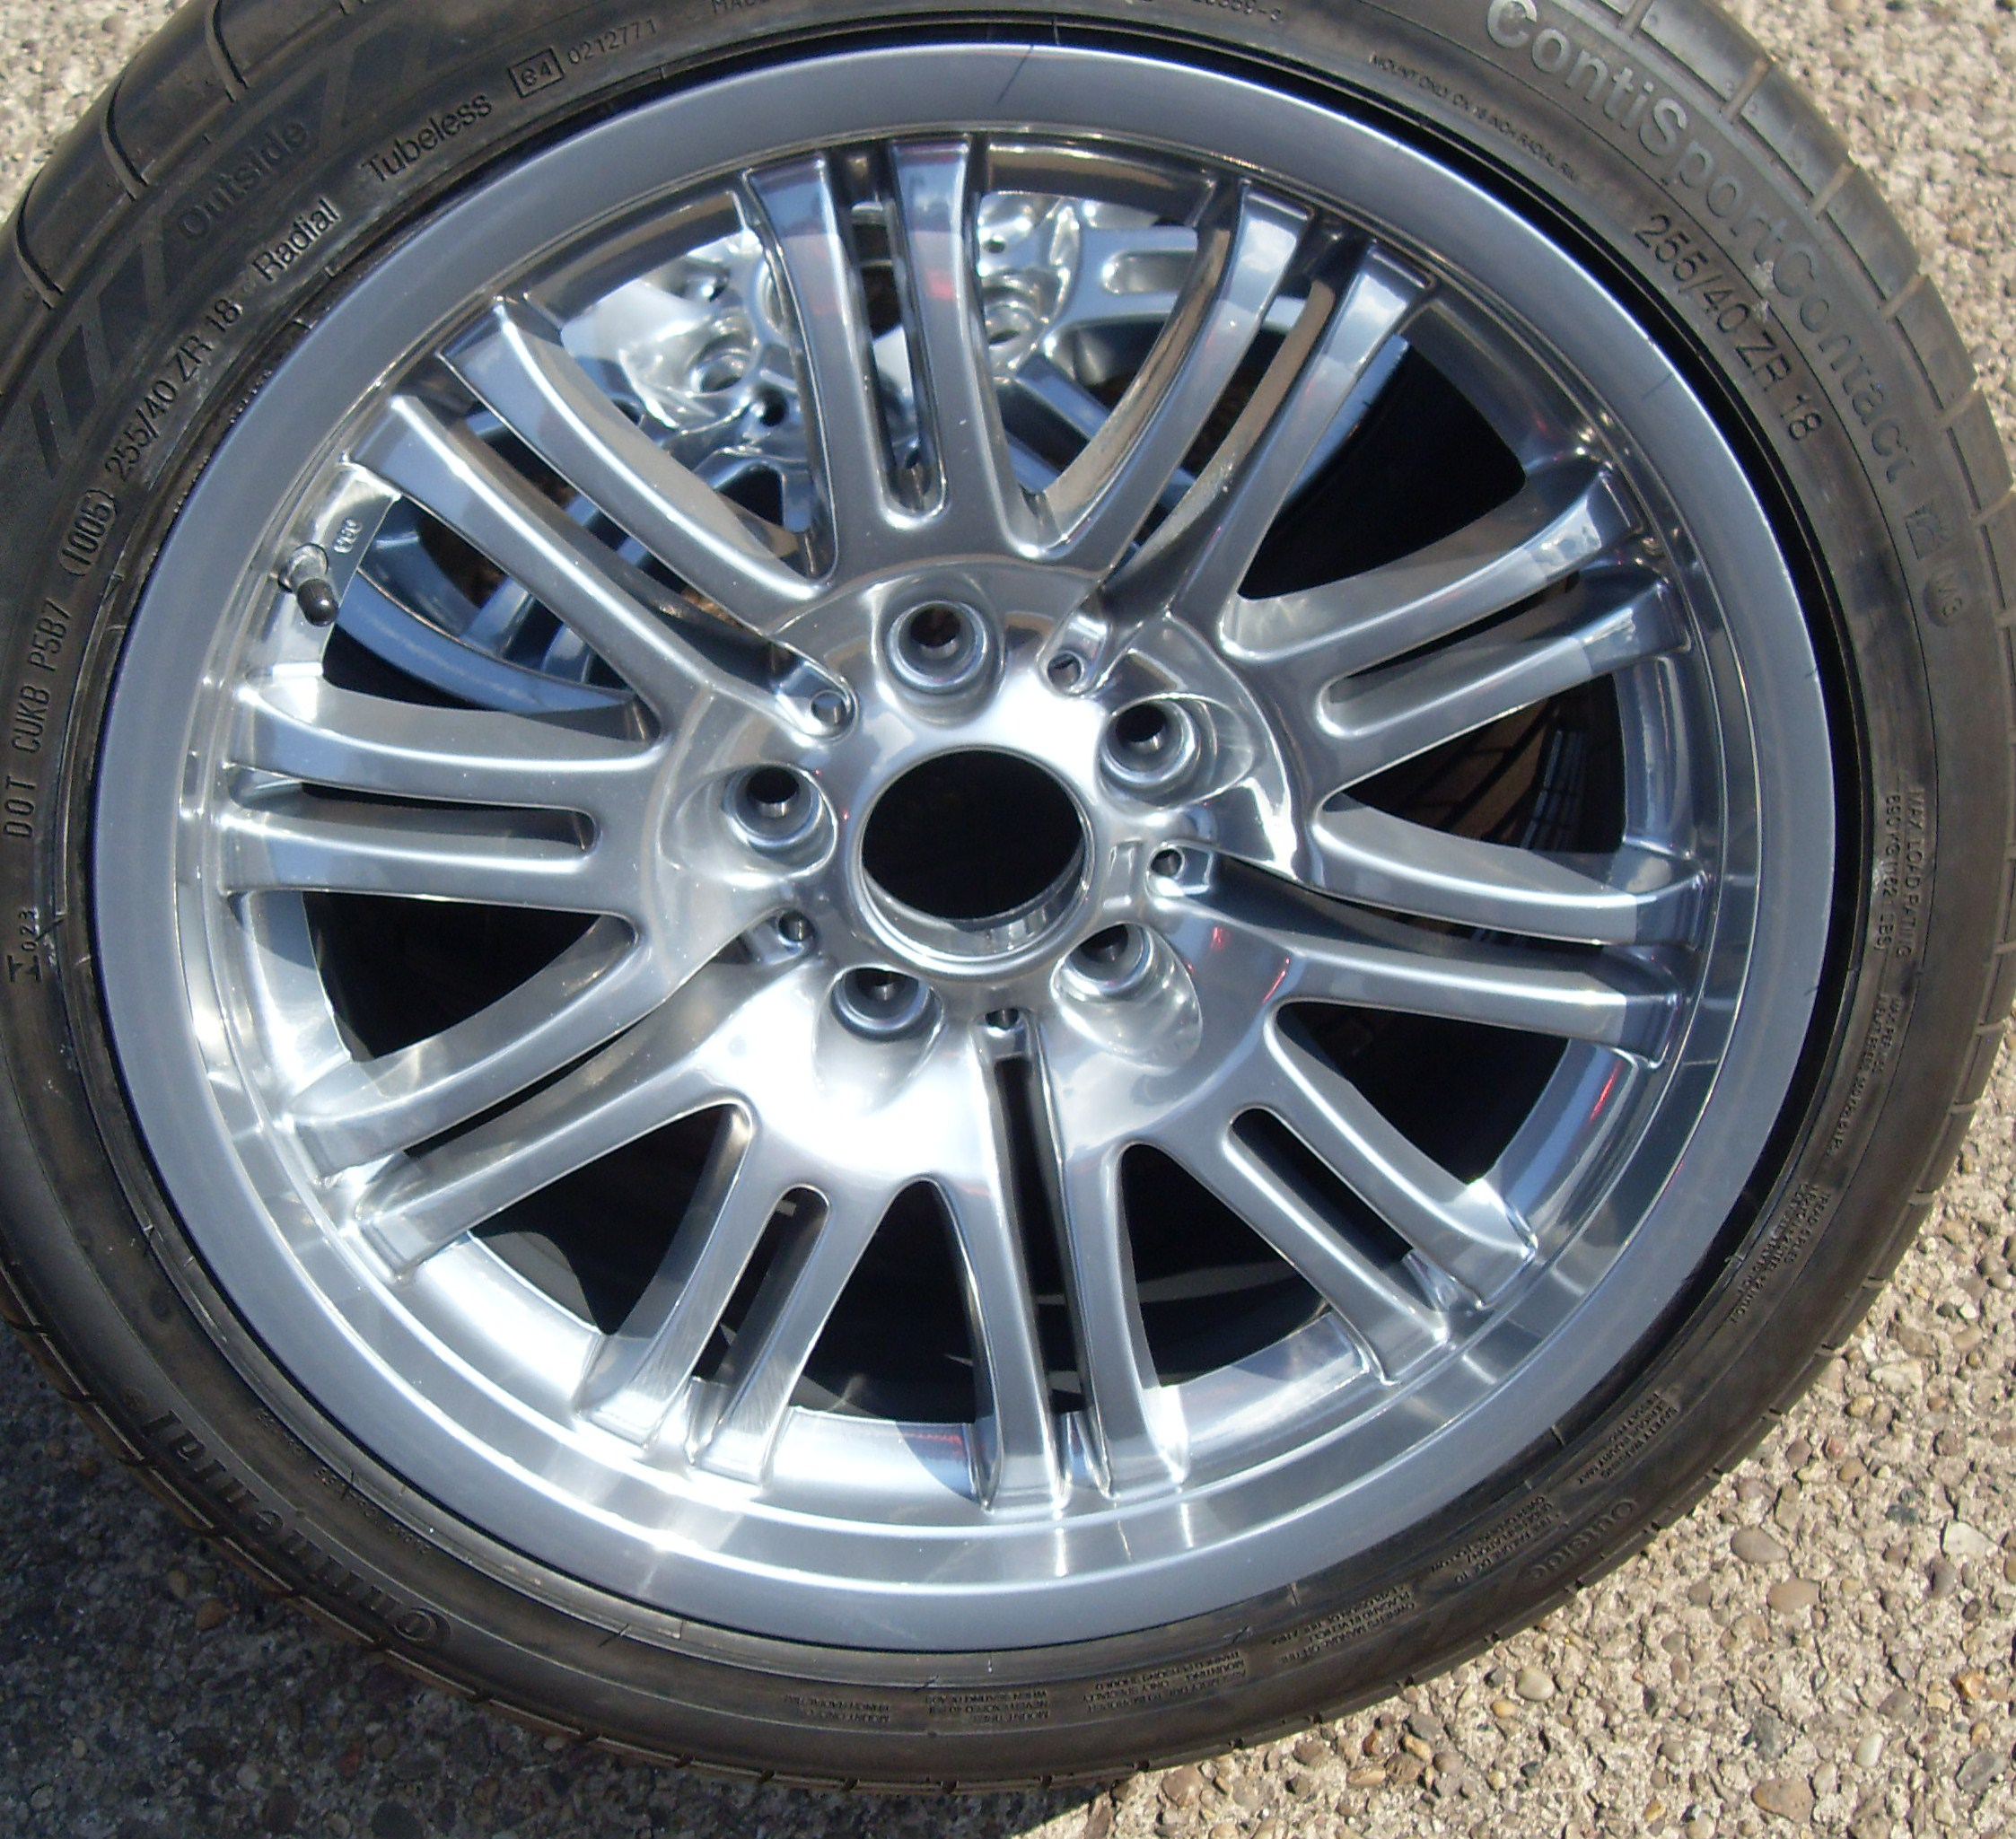 Painted & Refinished OEM 19's - The M3cutters - UK BMW M3 ...